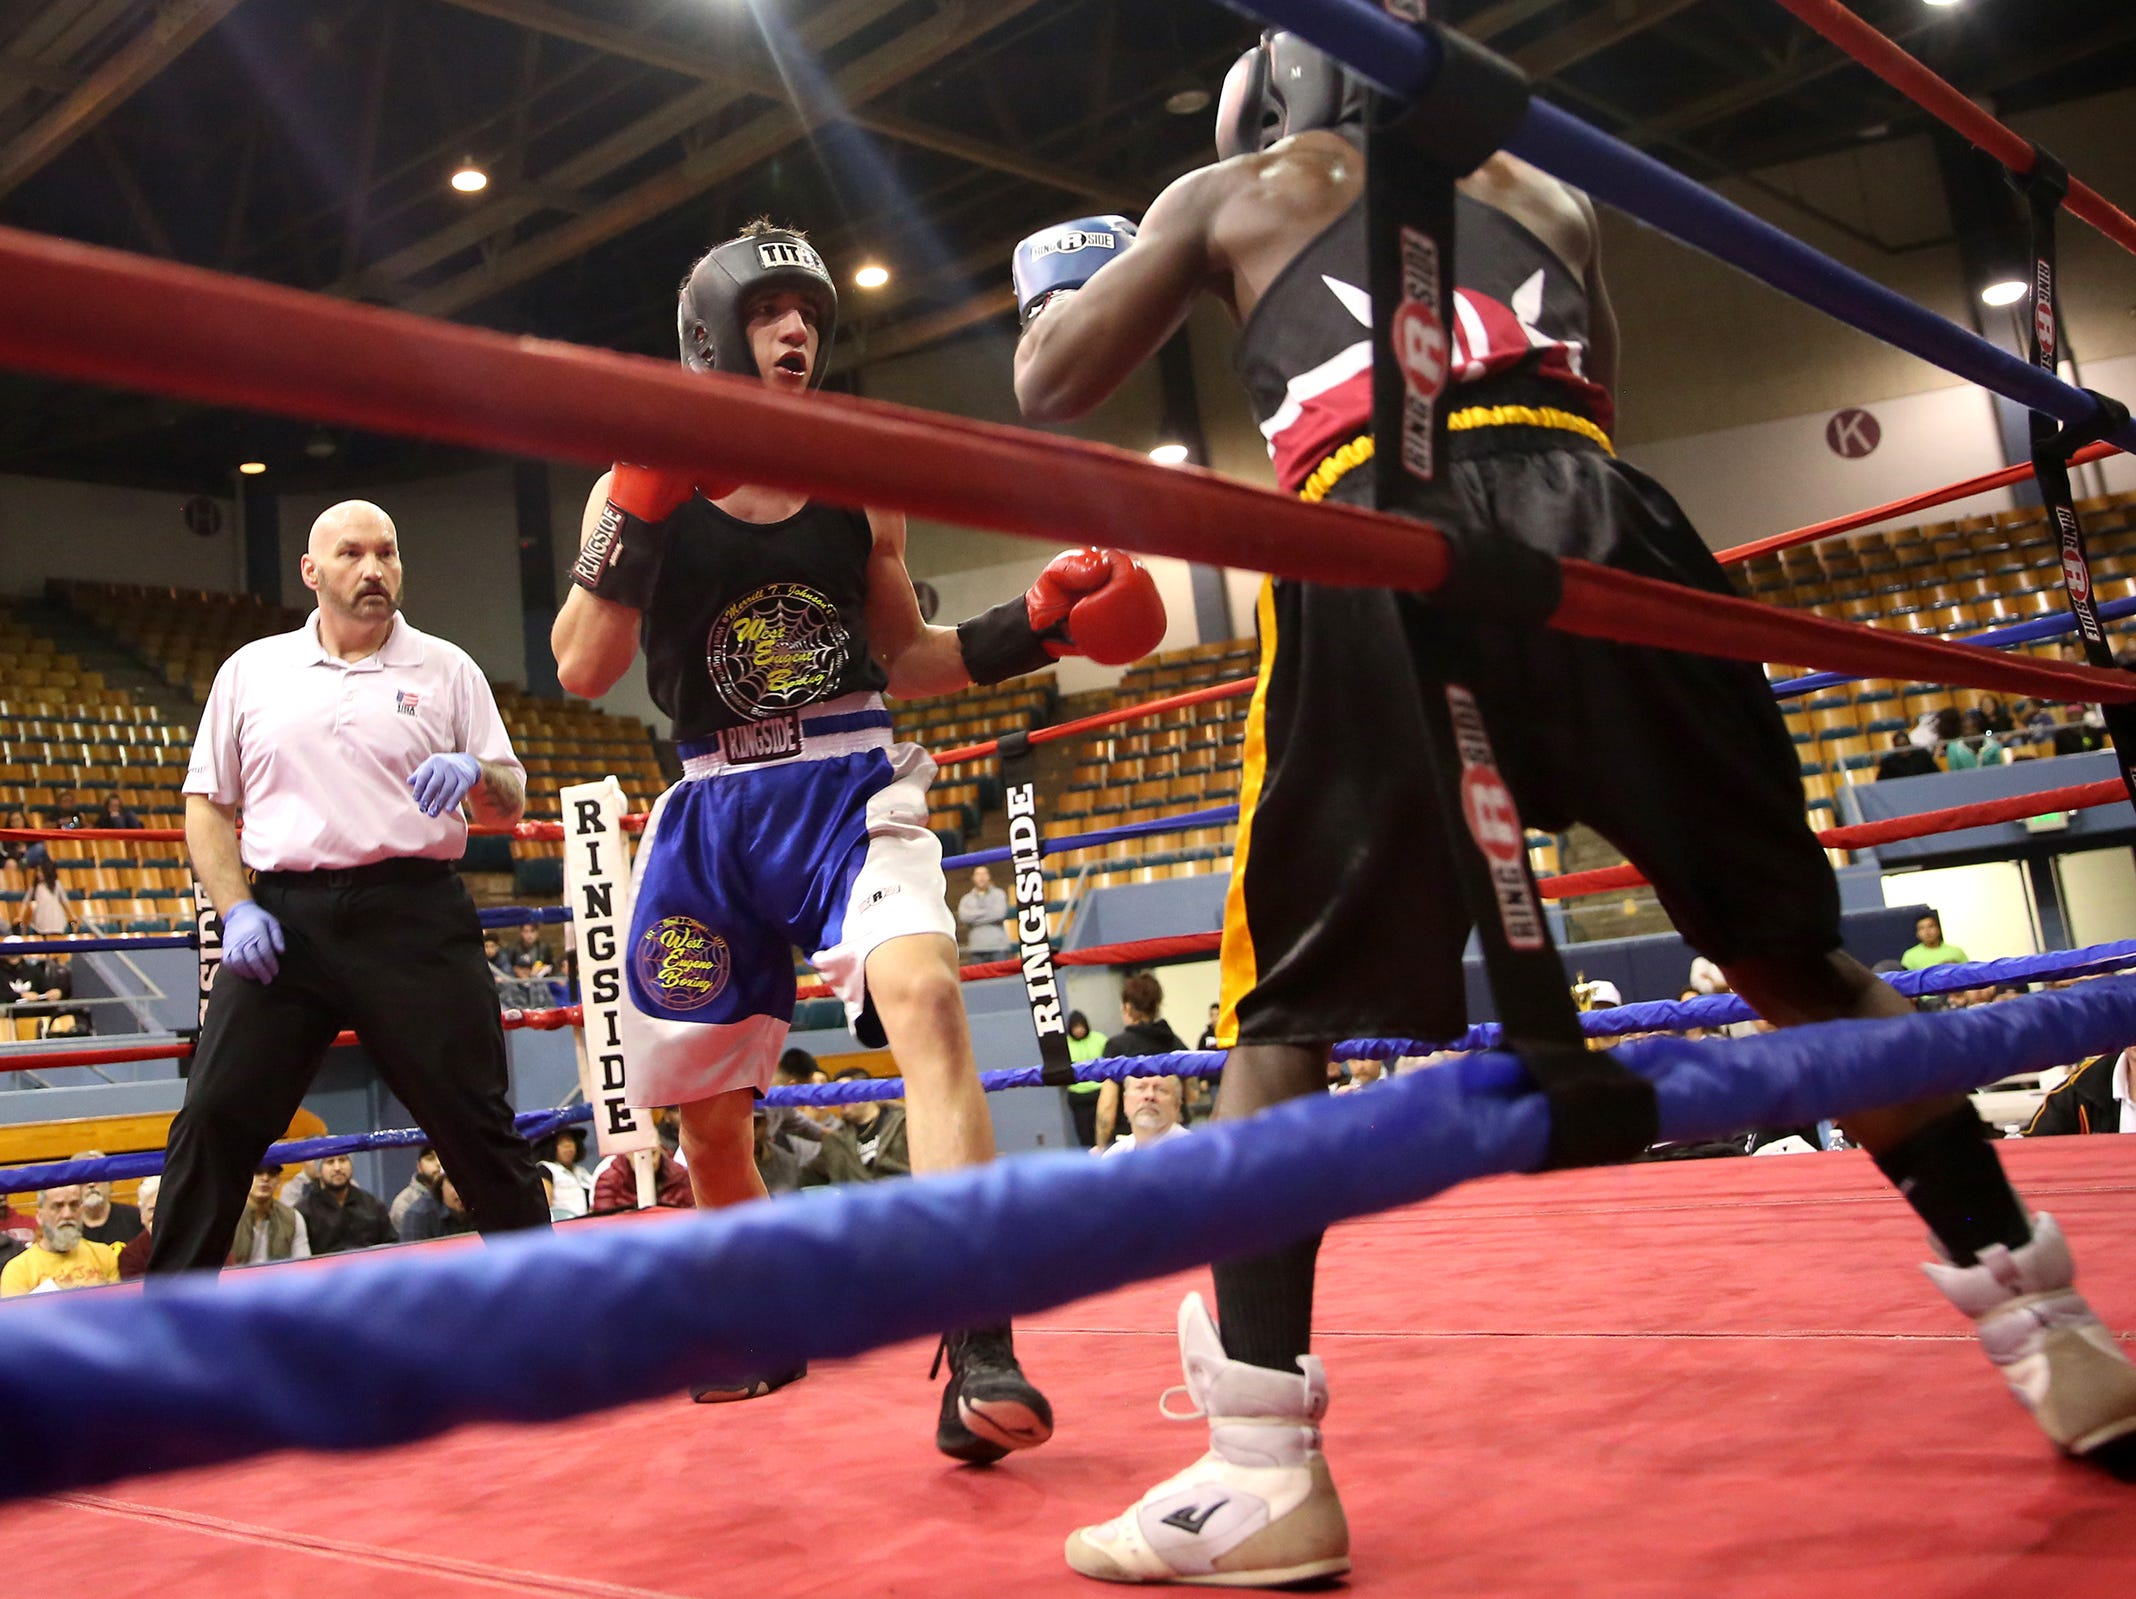 Anthony Cruz of Eugene takes on Ishmael Omulindi of Beaverton during the Oregon Golden Gloves championship matches at the Salem Armory on Saturday, Feb. 2, 2019.